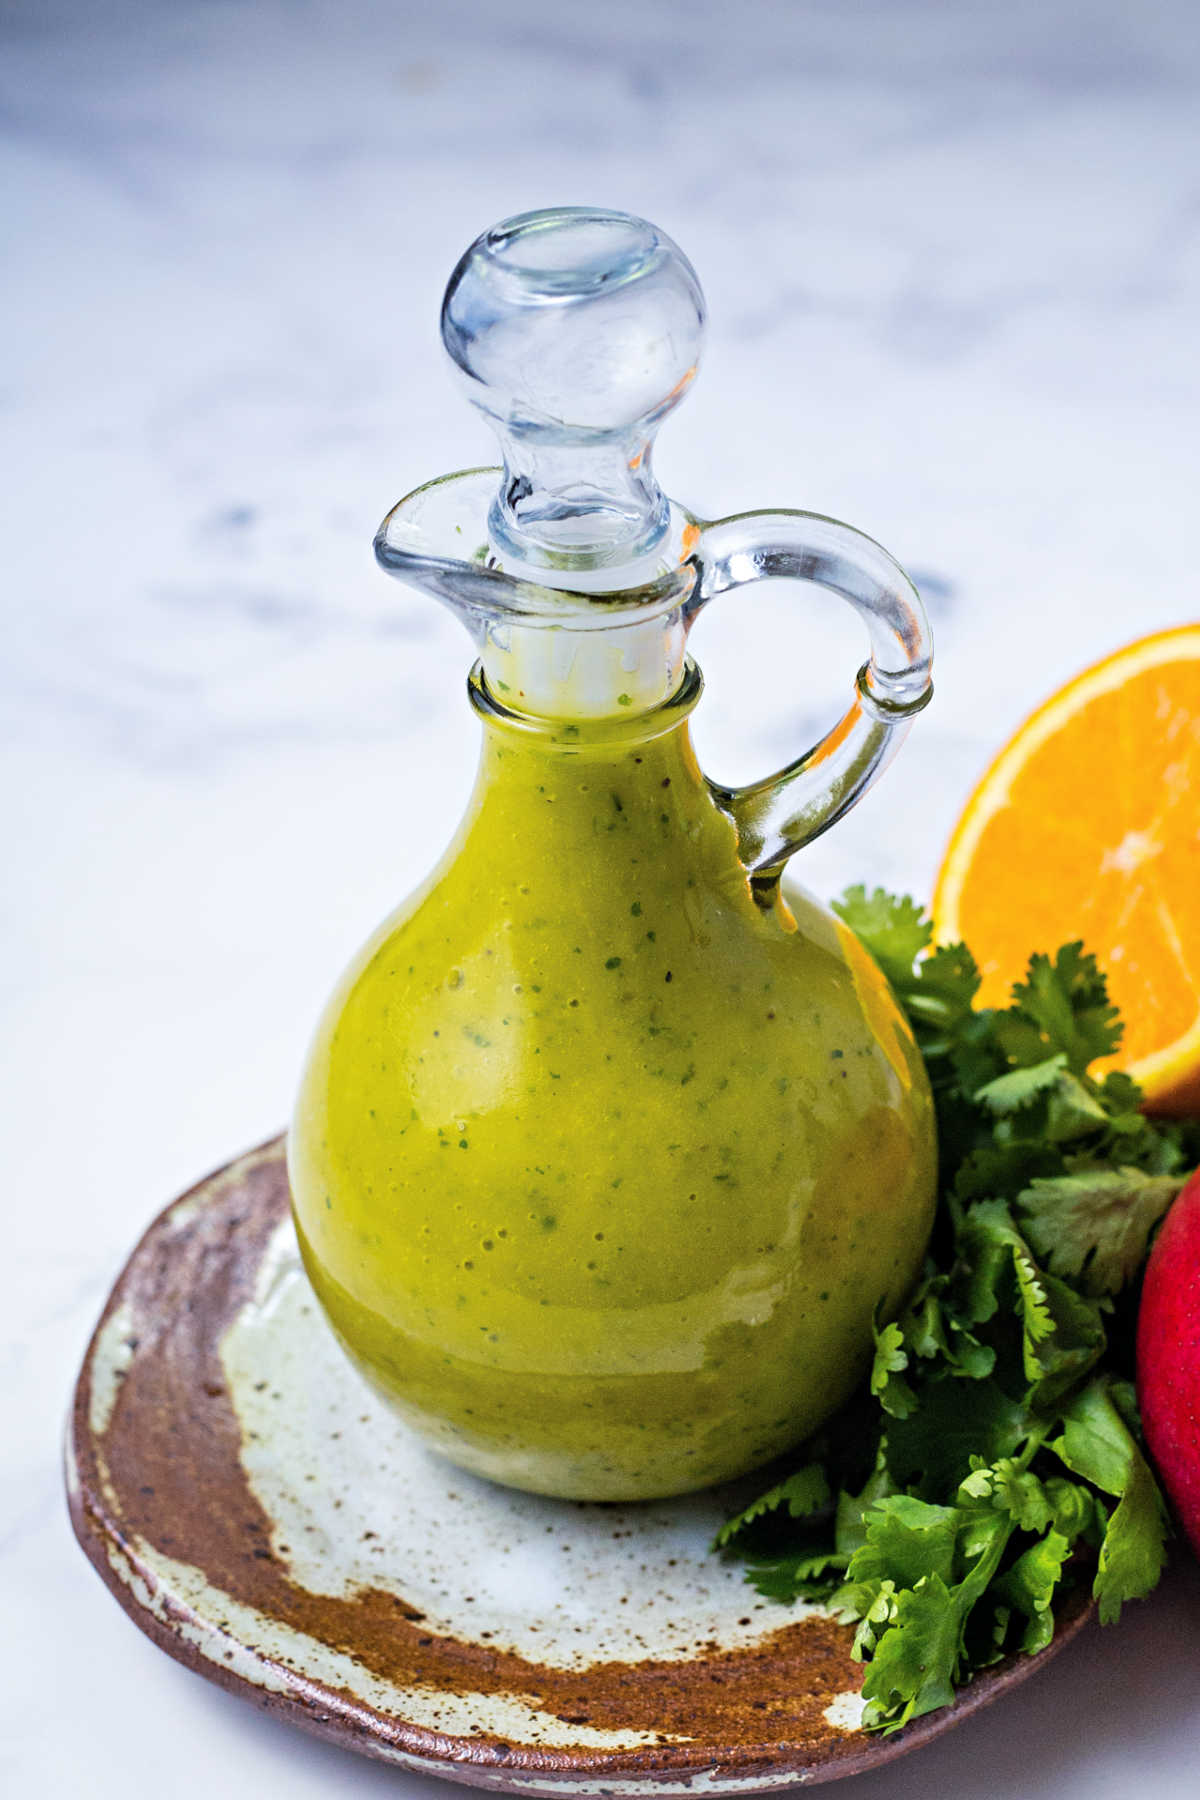 a decorative carafe filled with mango dressing sitting on a table surrounded by cilantro, an orange slice, and a mango.